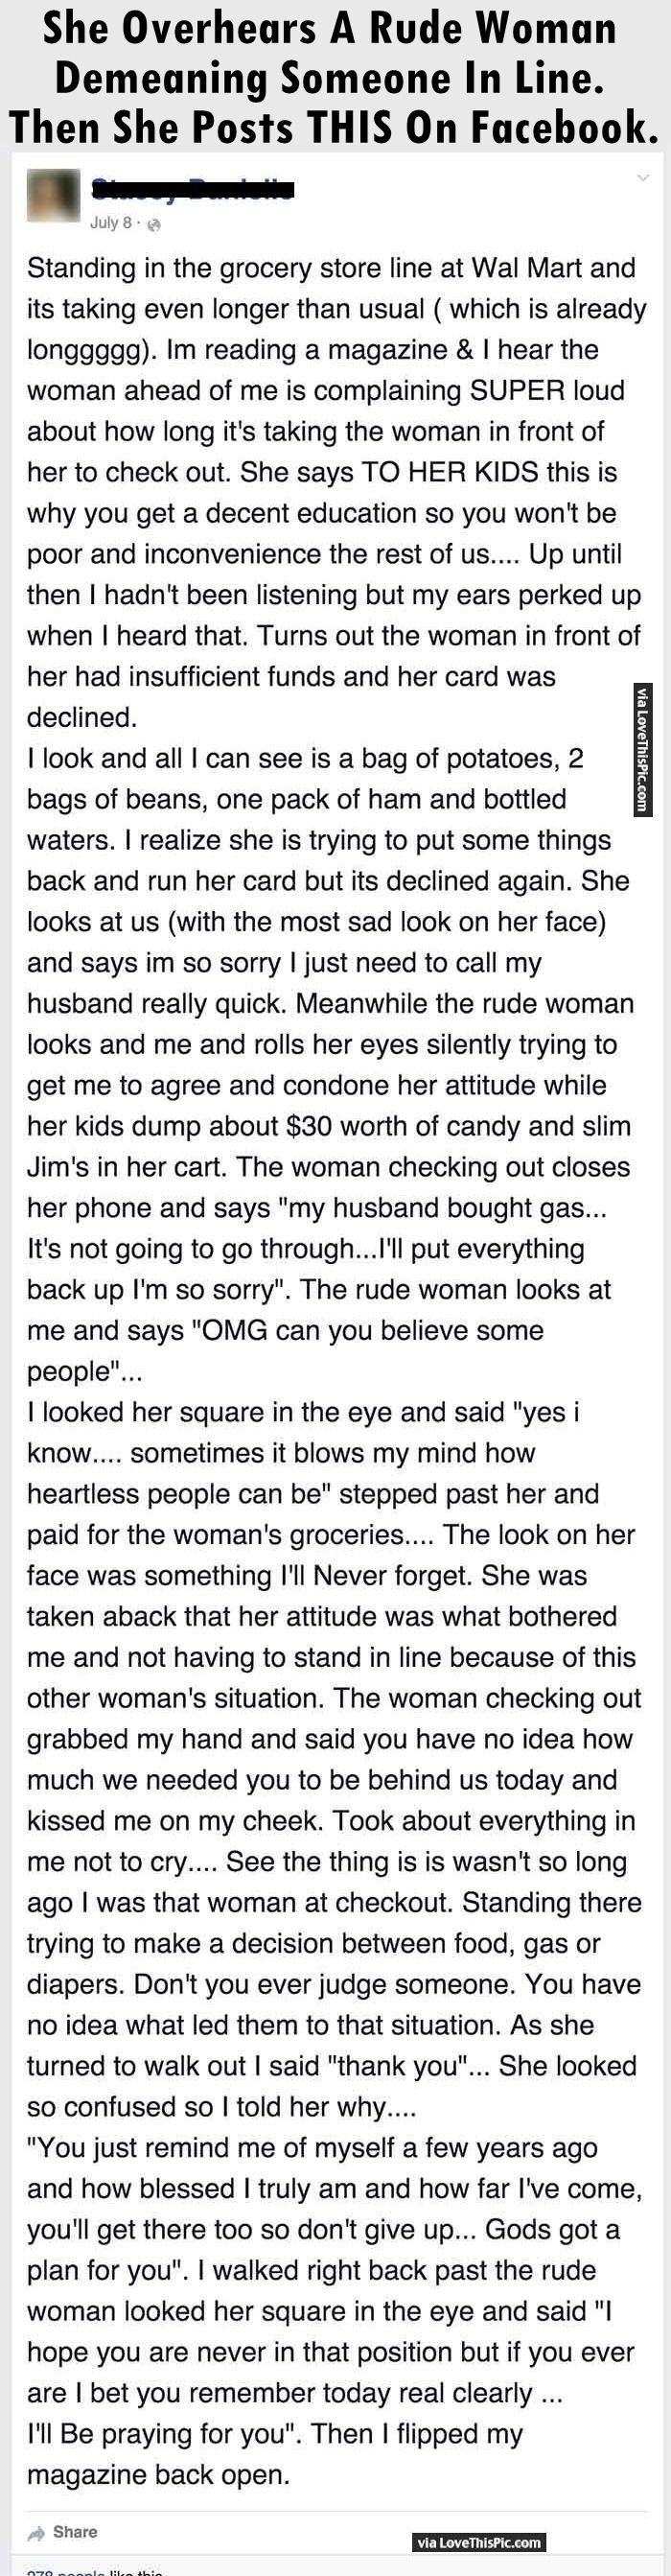 She Overhears A Rude Woman Demeaning Someone In Line Then She Posts This On Facebook. people amazing story interesting facts stories heart warming good people